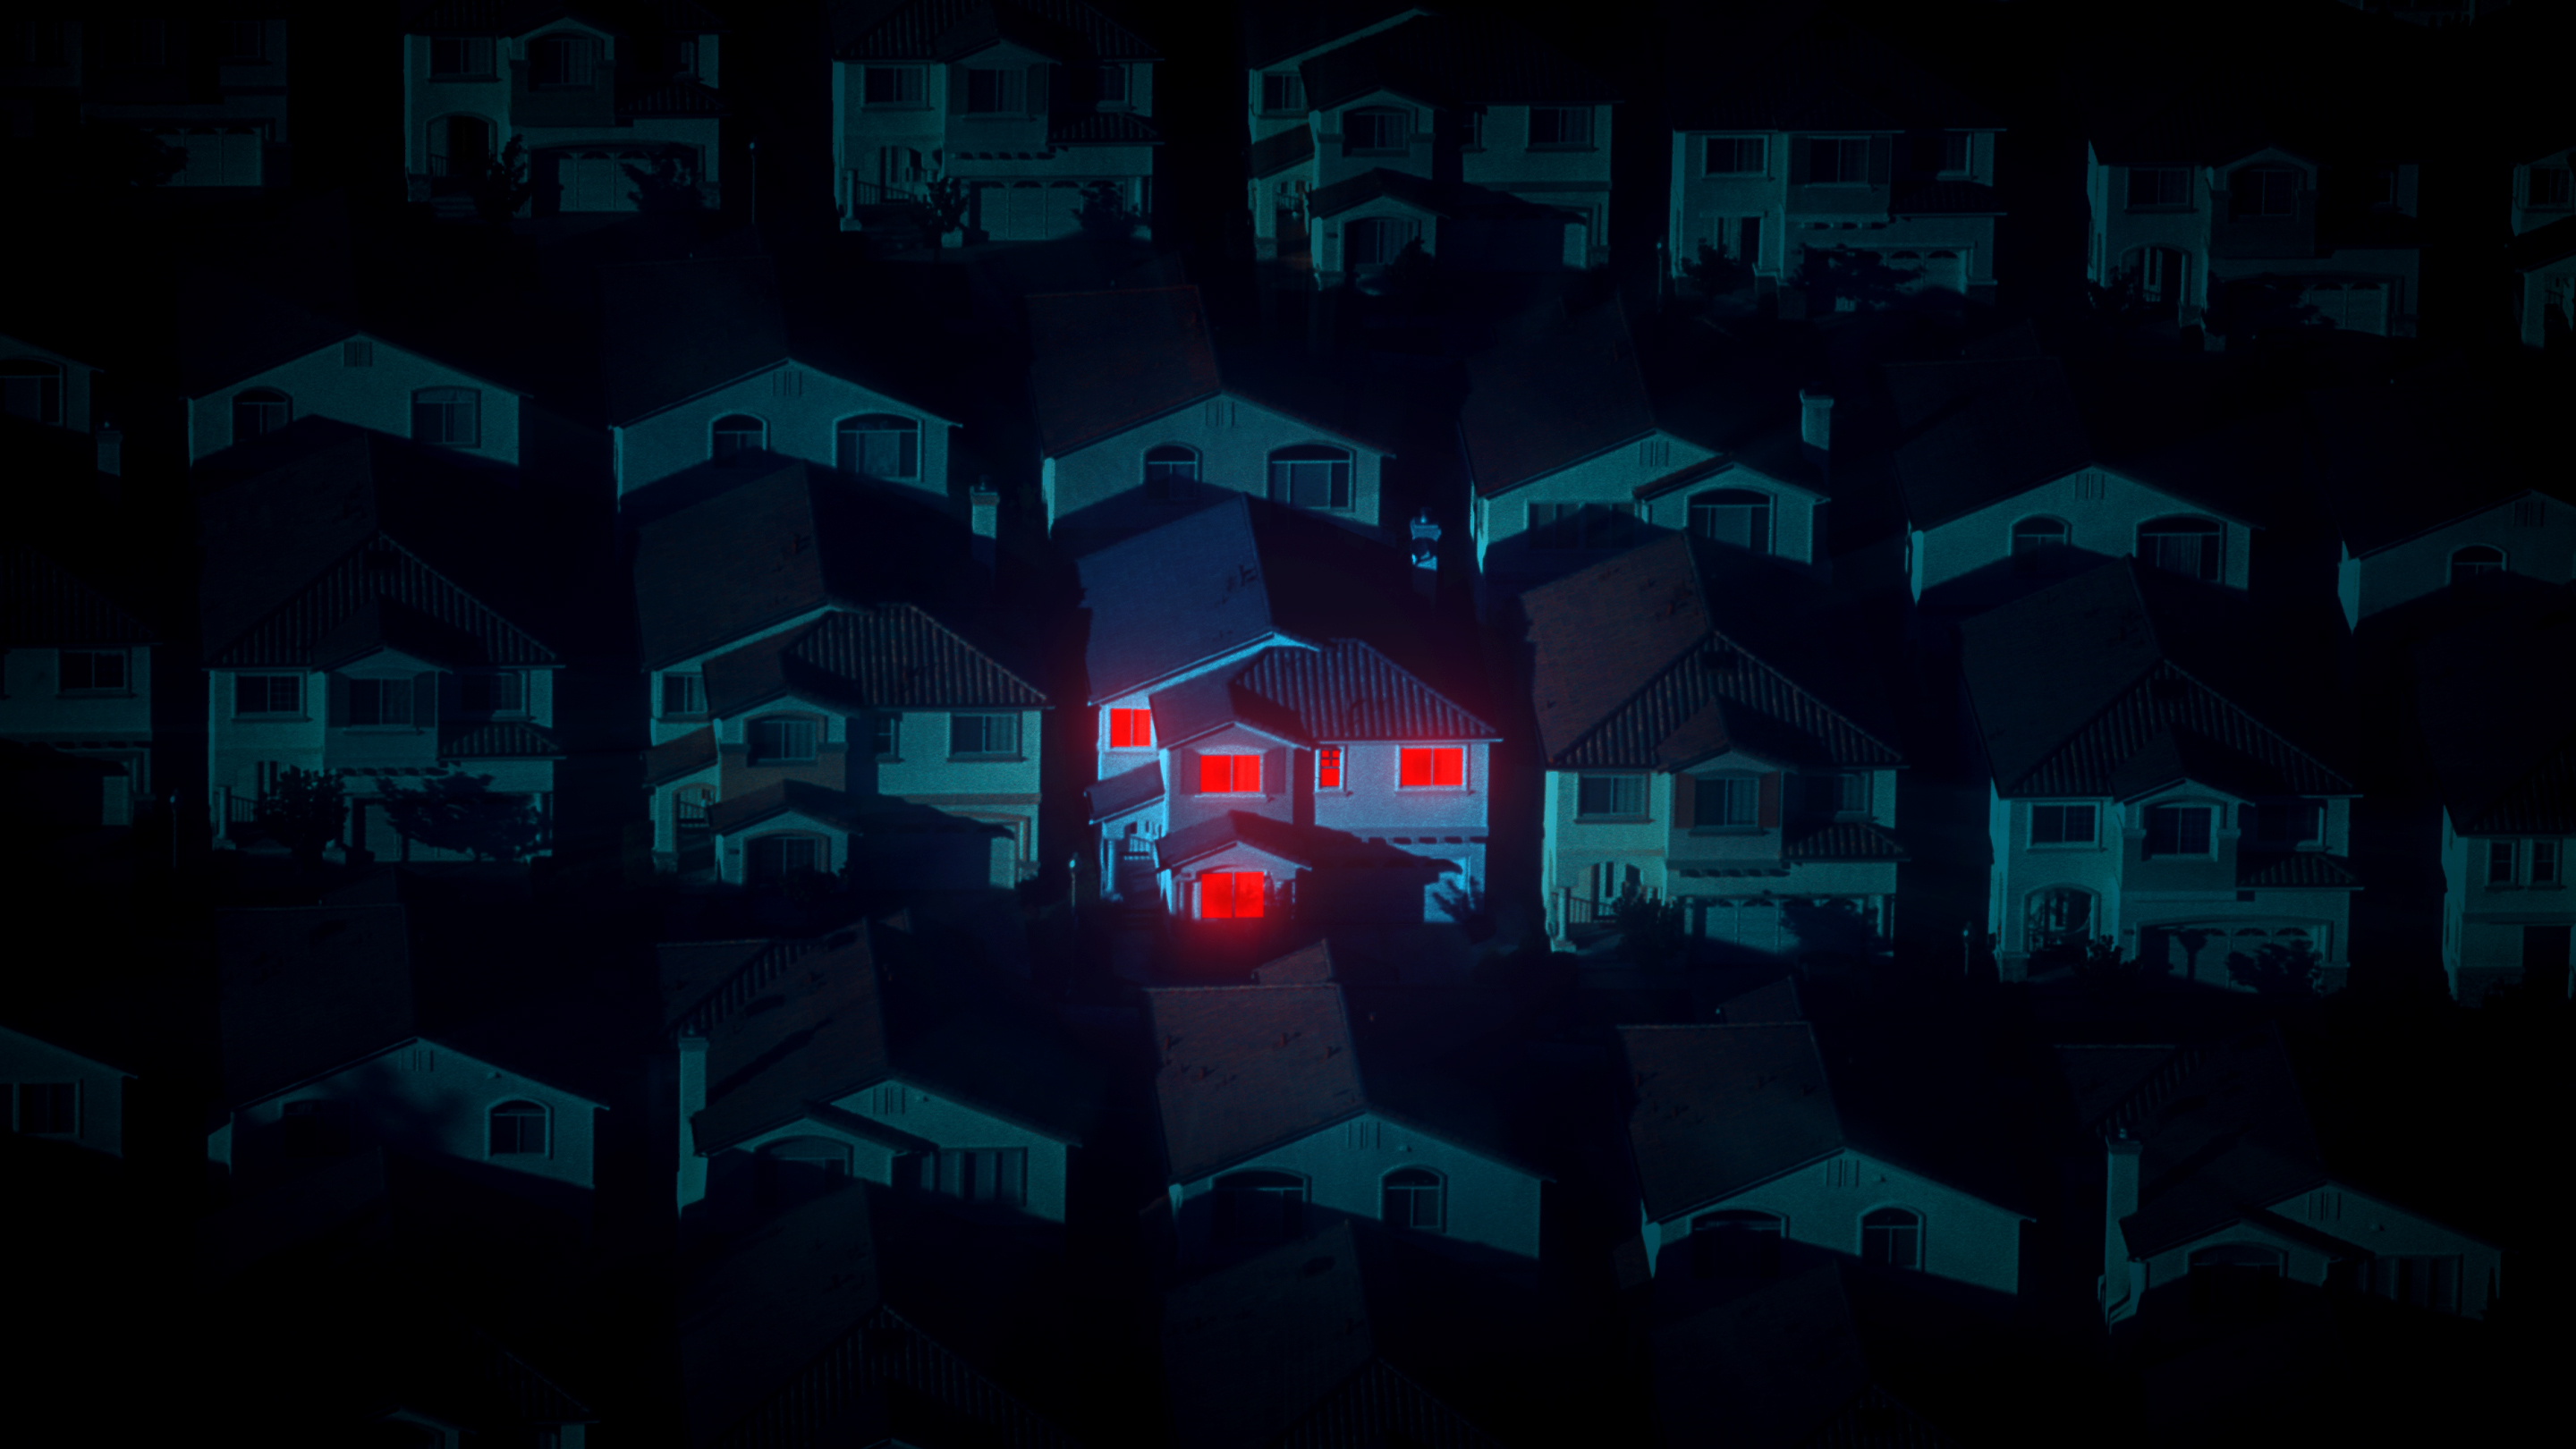 Rows of houses lined up on a dark street. One house is illuminated by a red light.